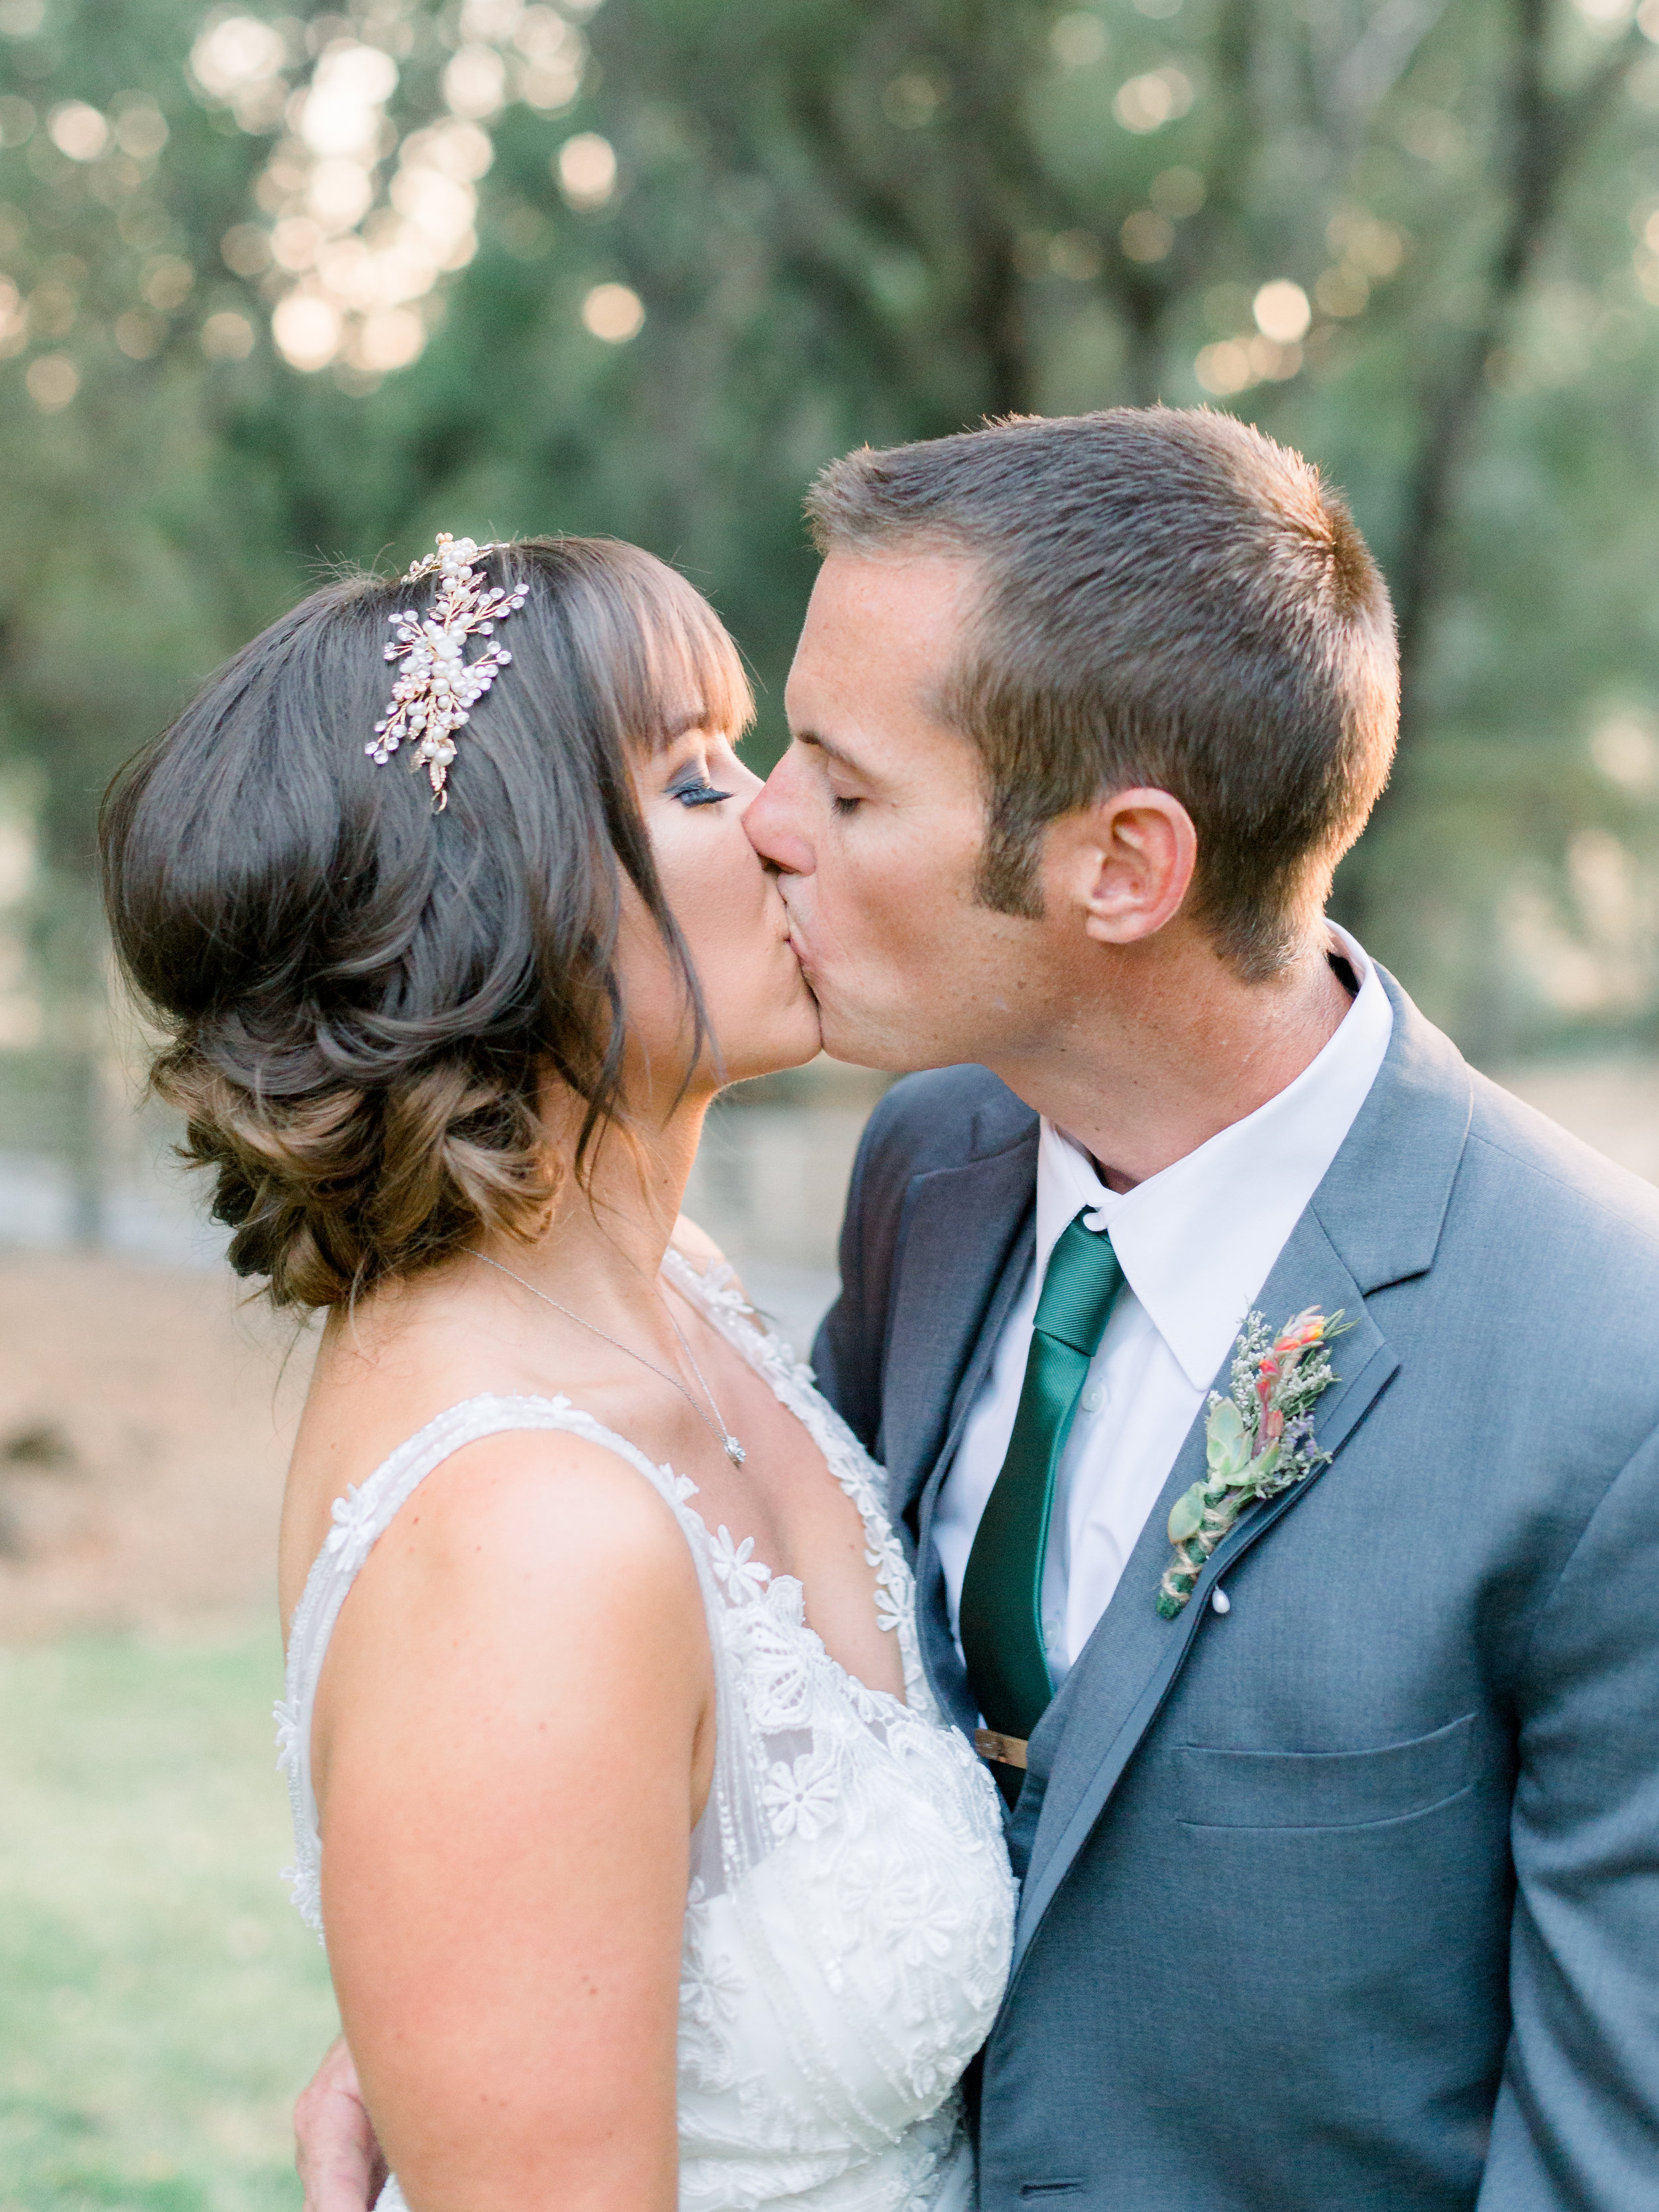 portrait-of-bride-and-groom-kissing-in-the-sunset.jpg